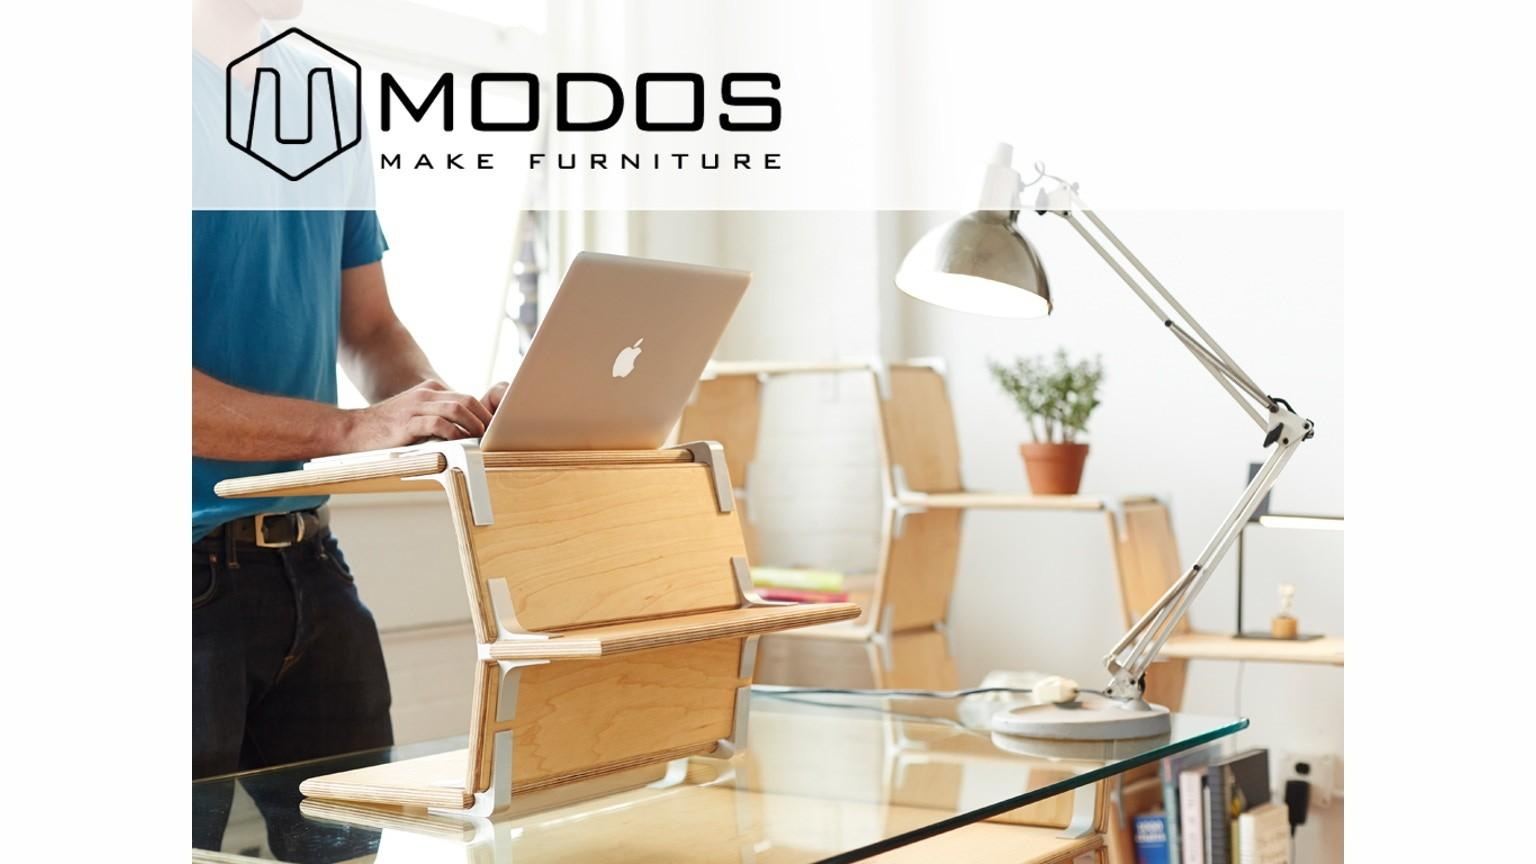 Modos Tool Reconfigurable Furniture System